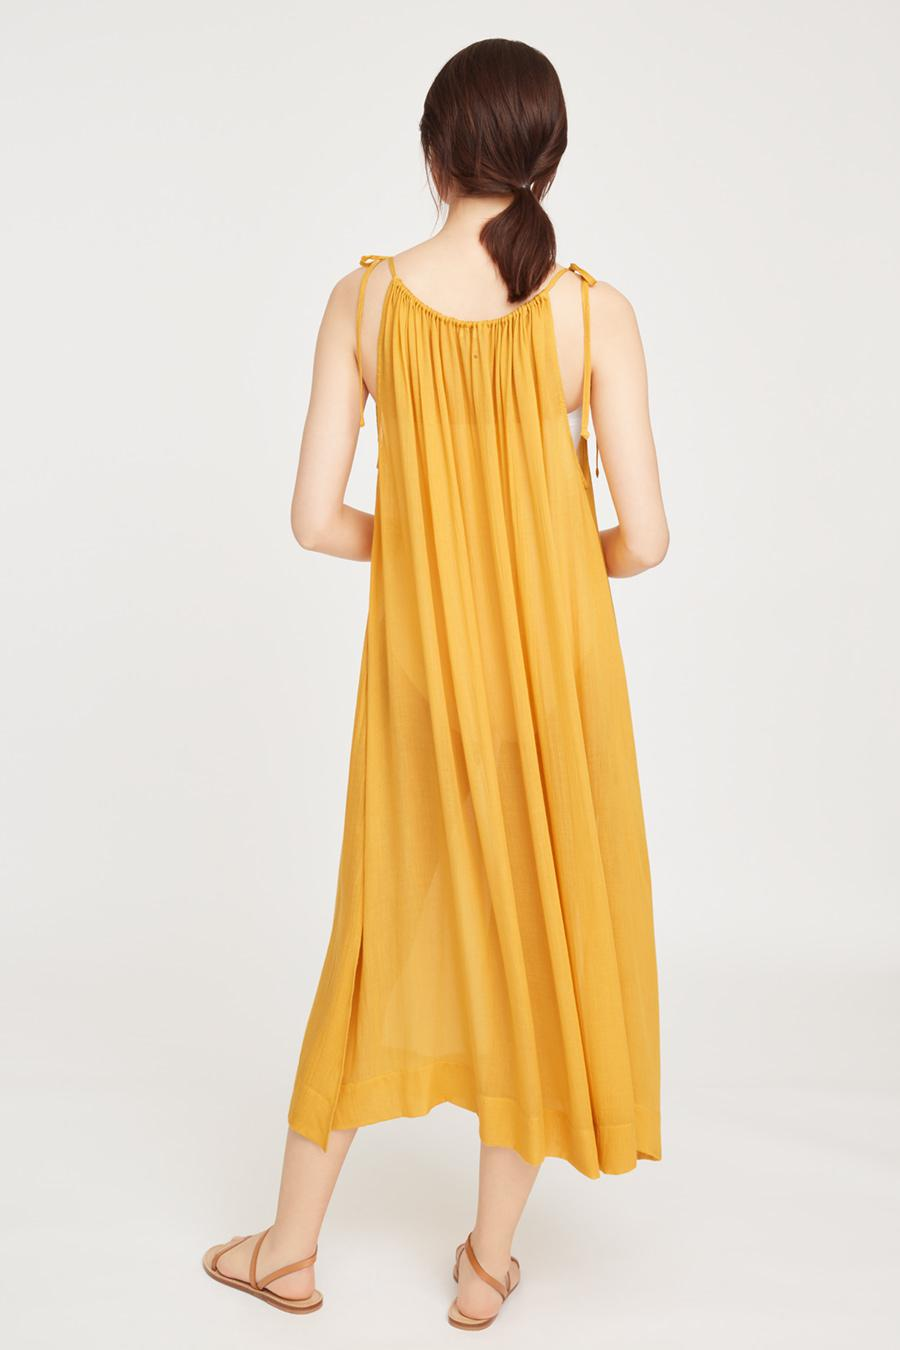 Women's Gathered-Neck Maxi Coverup in Daffodil | Size: 2